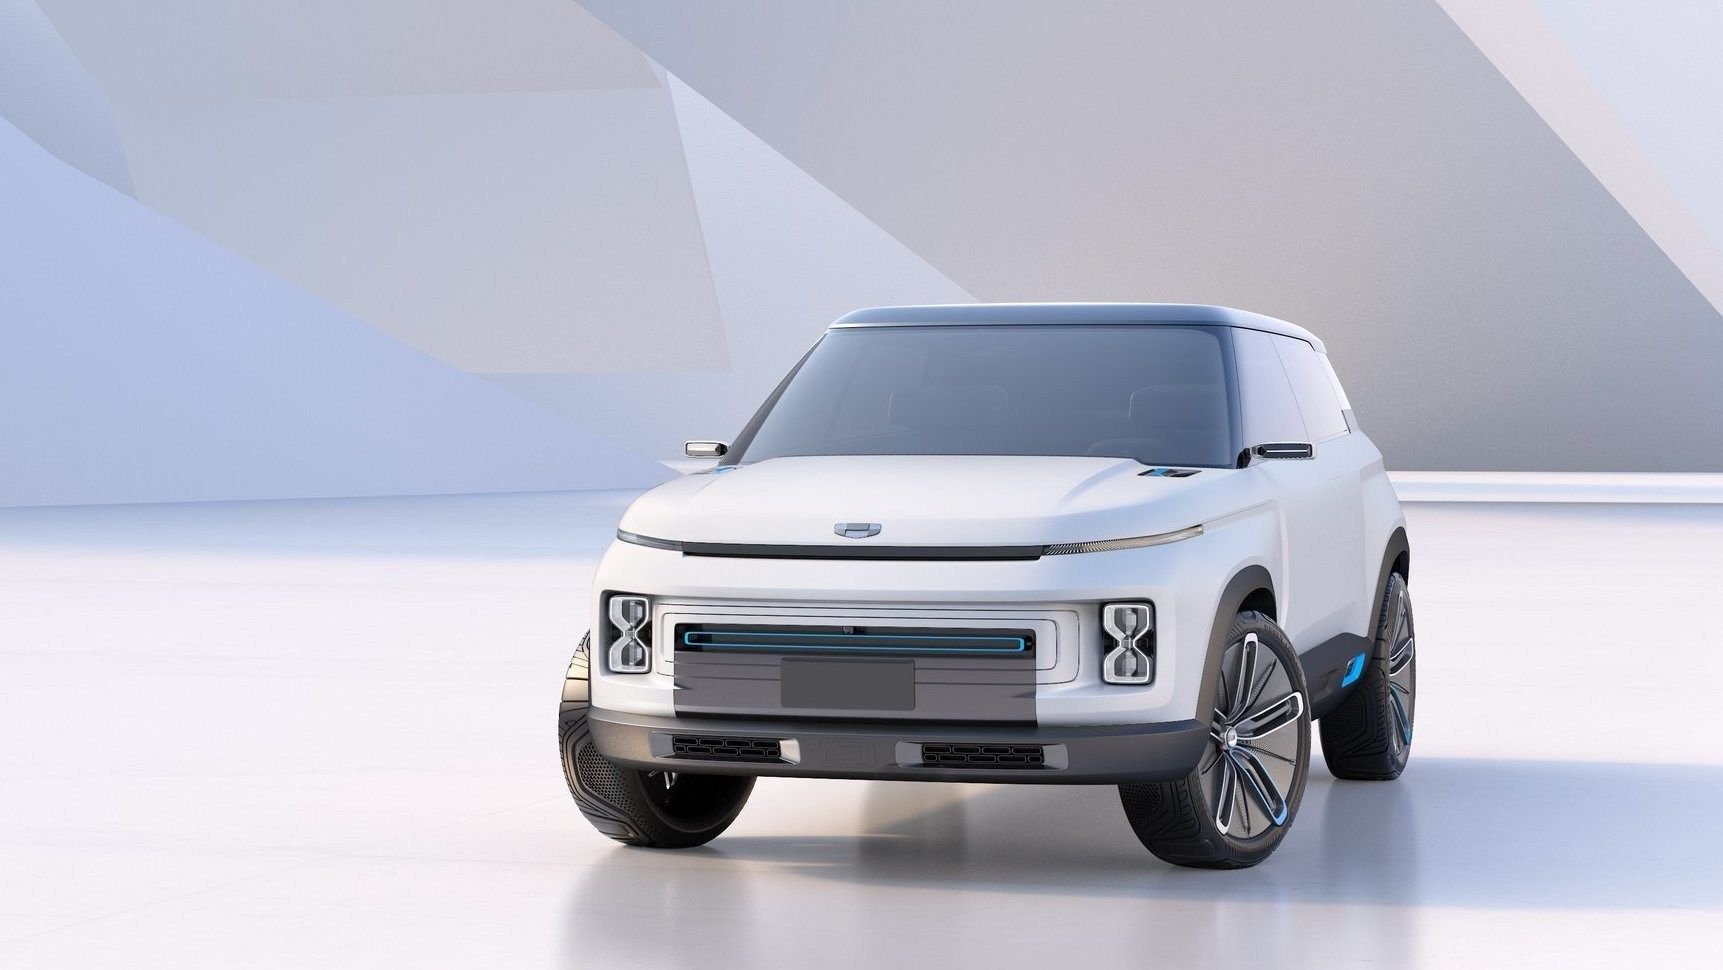 Geely-Icon-Concept-13.jpg